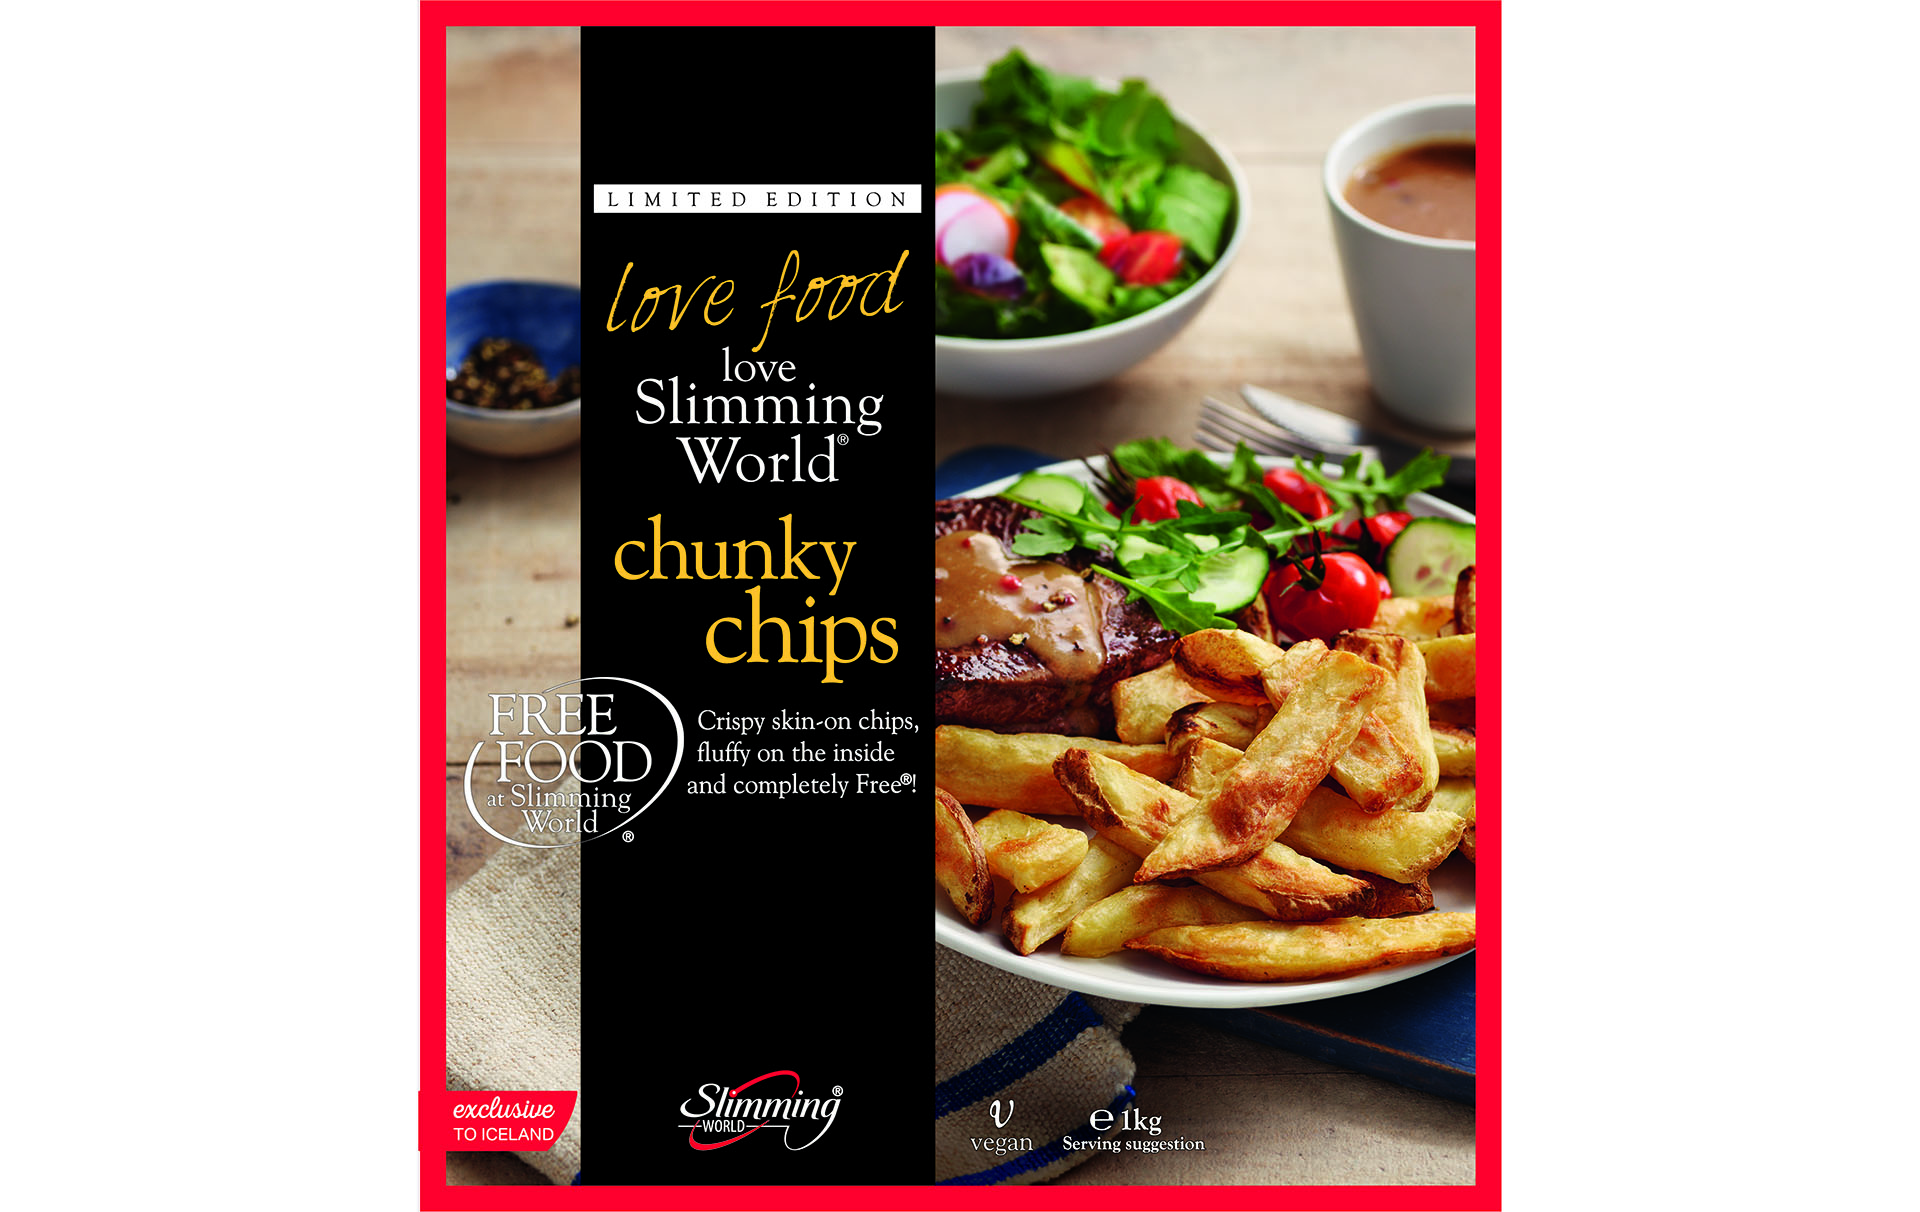 Iceland Slimming World chips